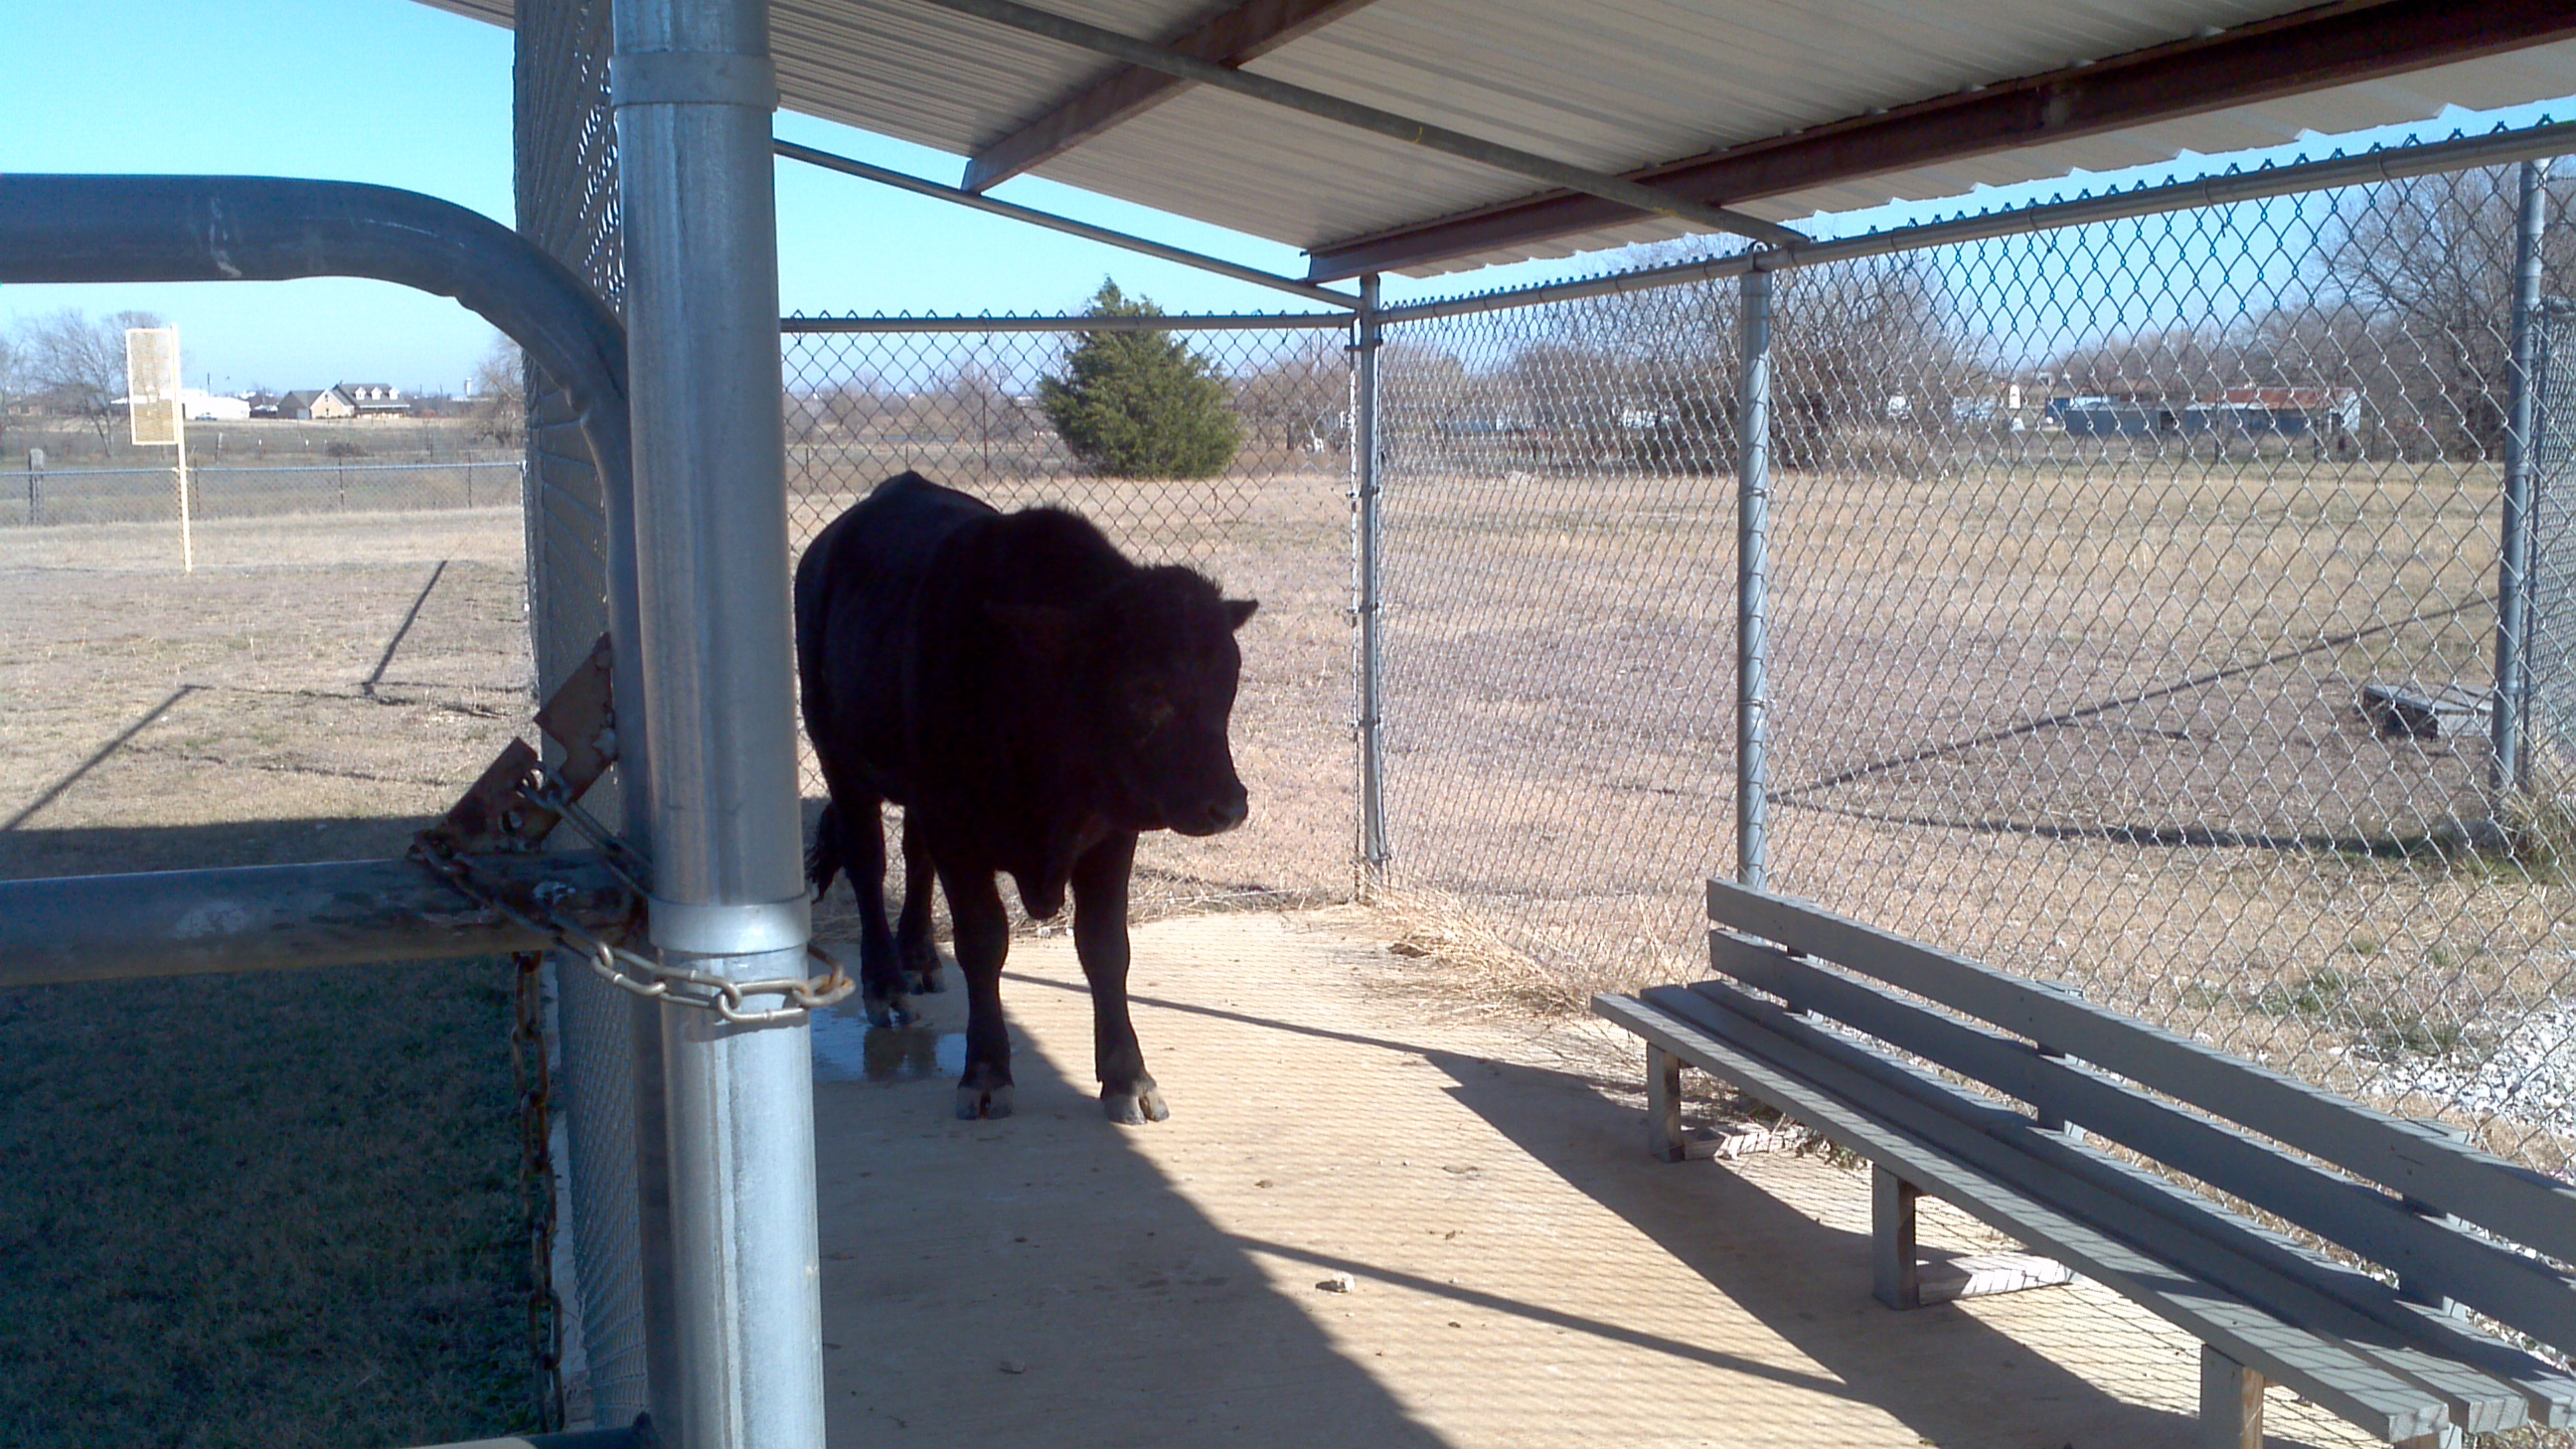 1-3-12 Bull in dugout-Nance field